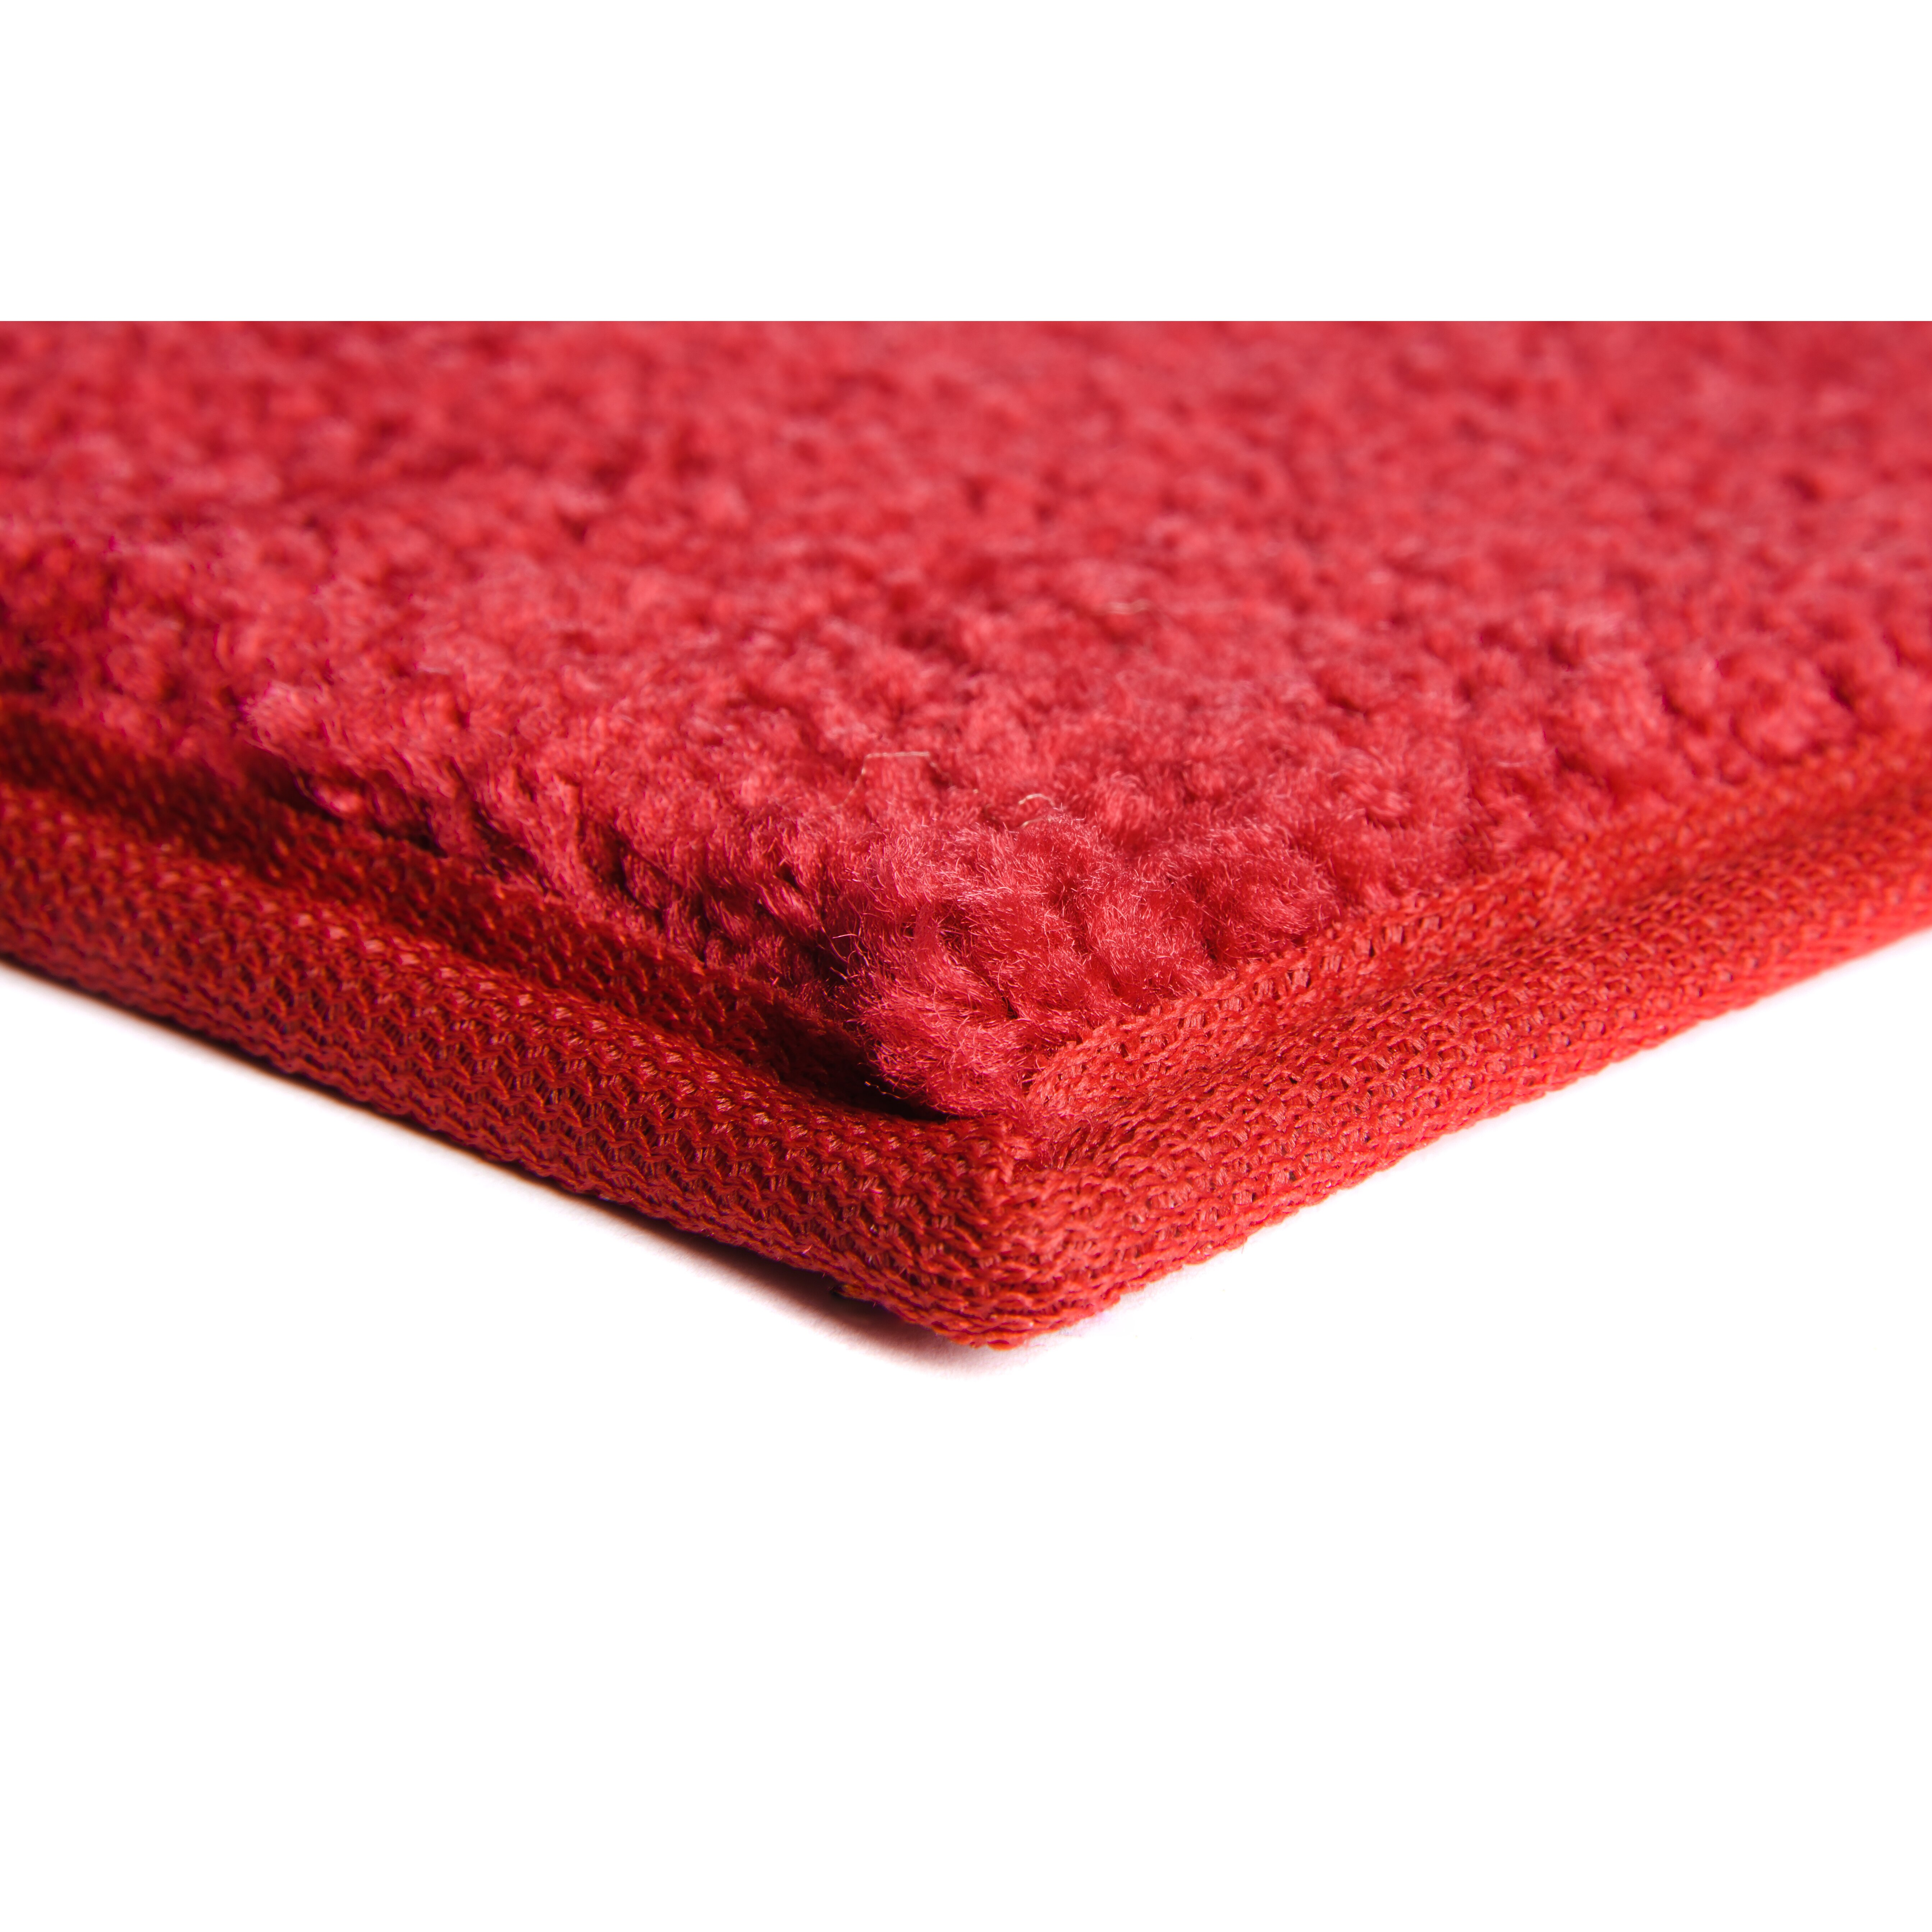 Bright red bathroom rugs - Bright Red Bathroom Rugs Nance Carpet And Rug Ourspace Red Ft X Home Decor